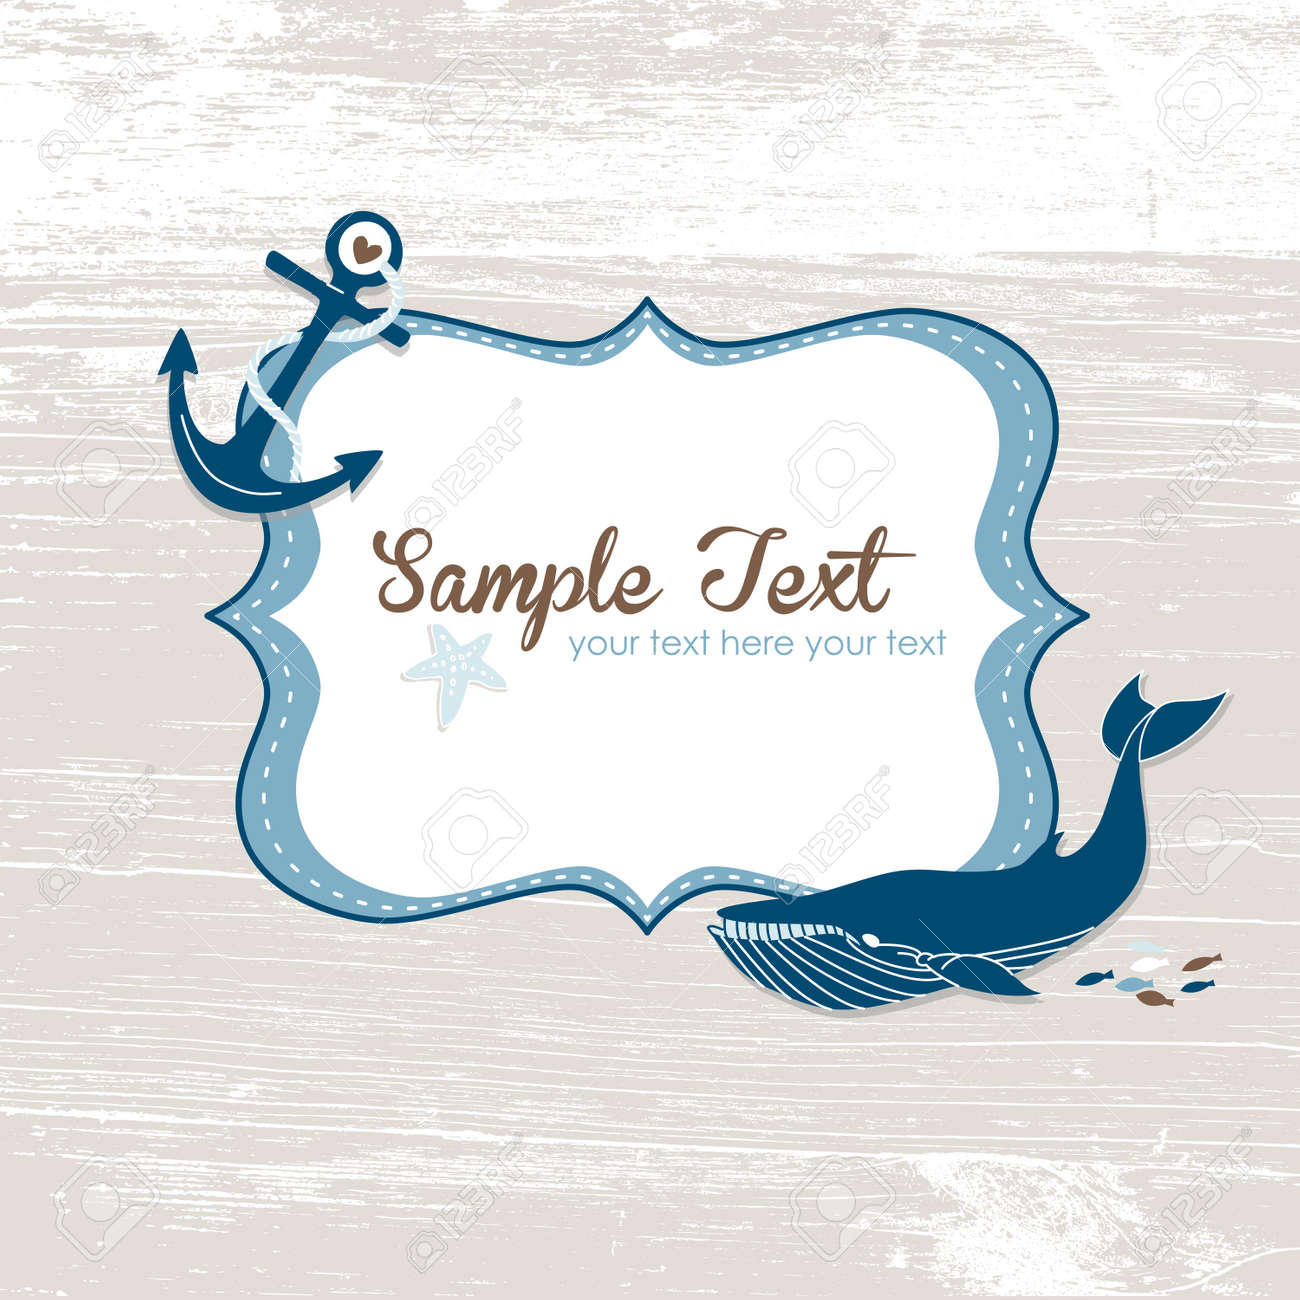 Grunge nautical card with a frame, anchor and a blue whale. Stock Vector - 15158882